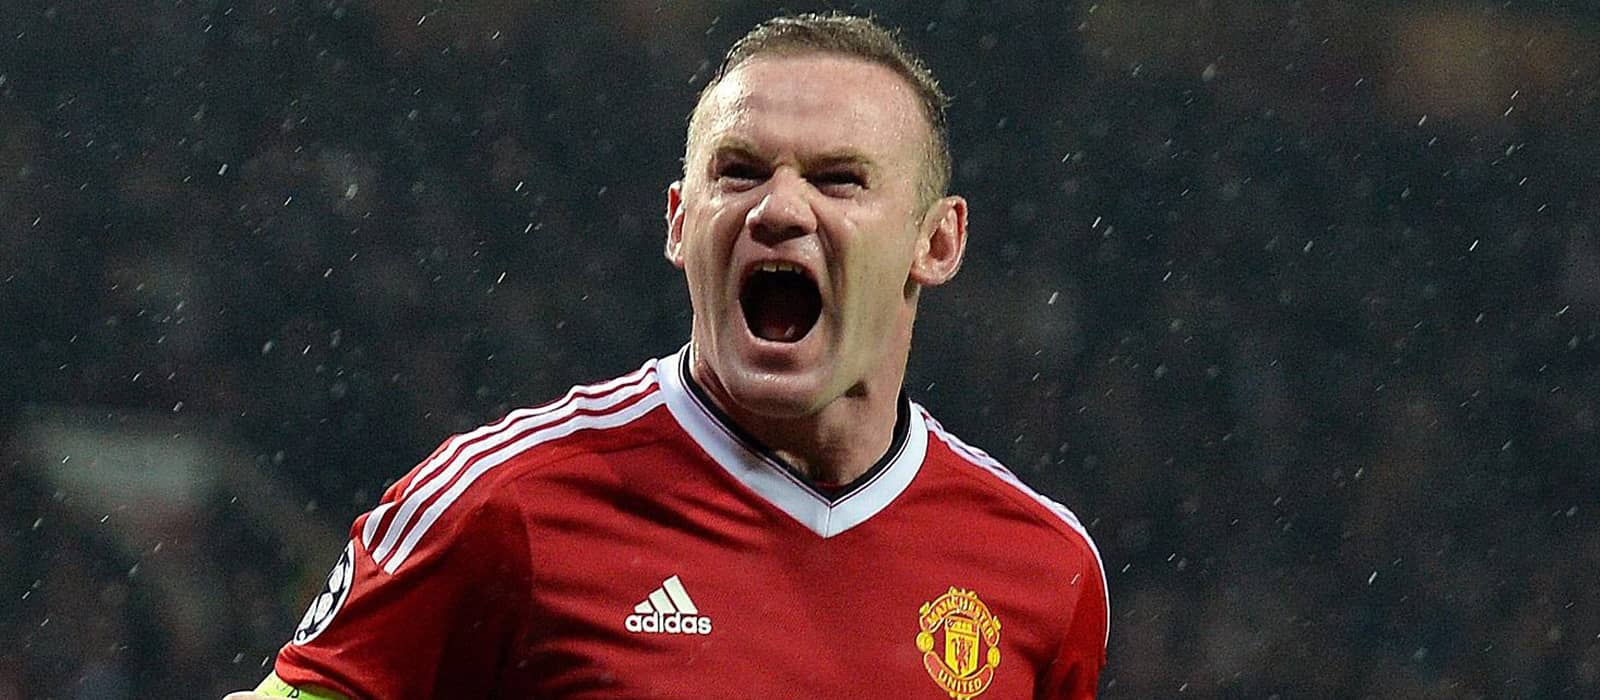 Manchester United's Potential XI vs Spurs: Wayne Rooney starts